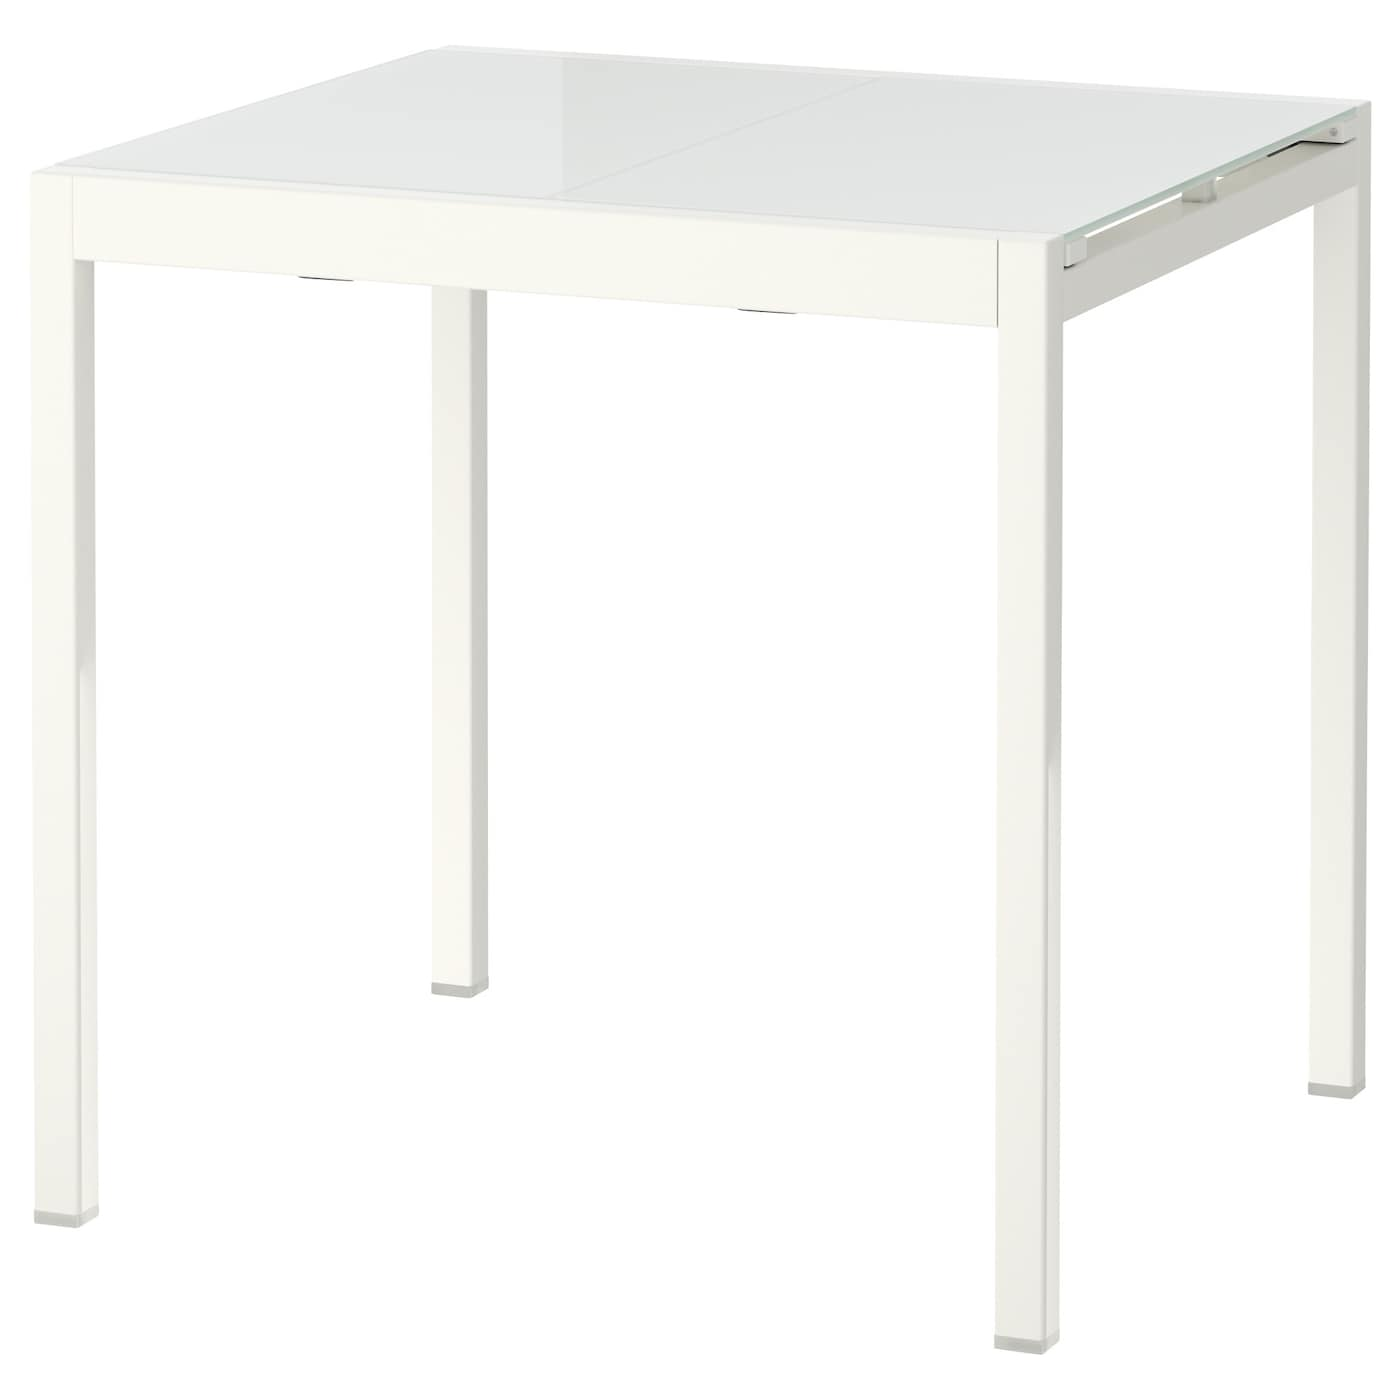 Glivarp extendable table white 75 115x70 cm ikea for Table exterieur vima